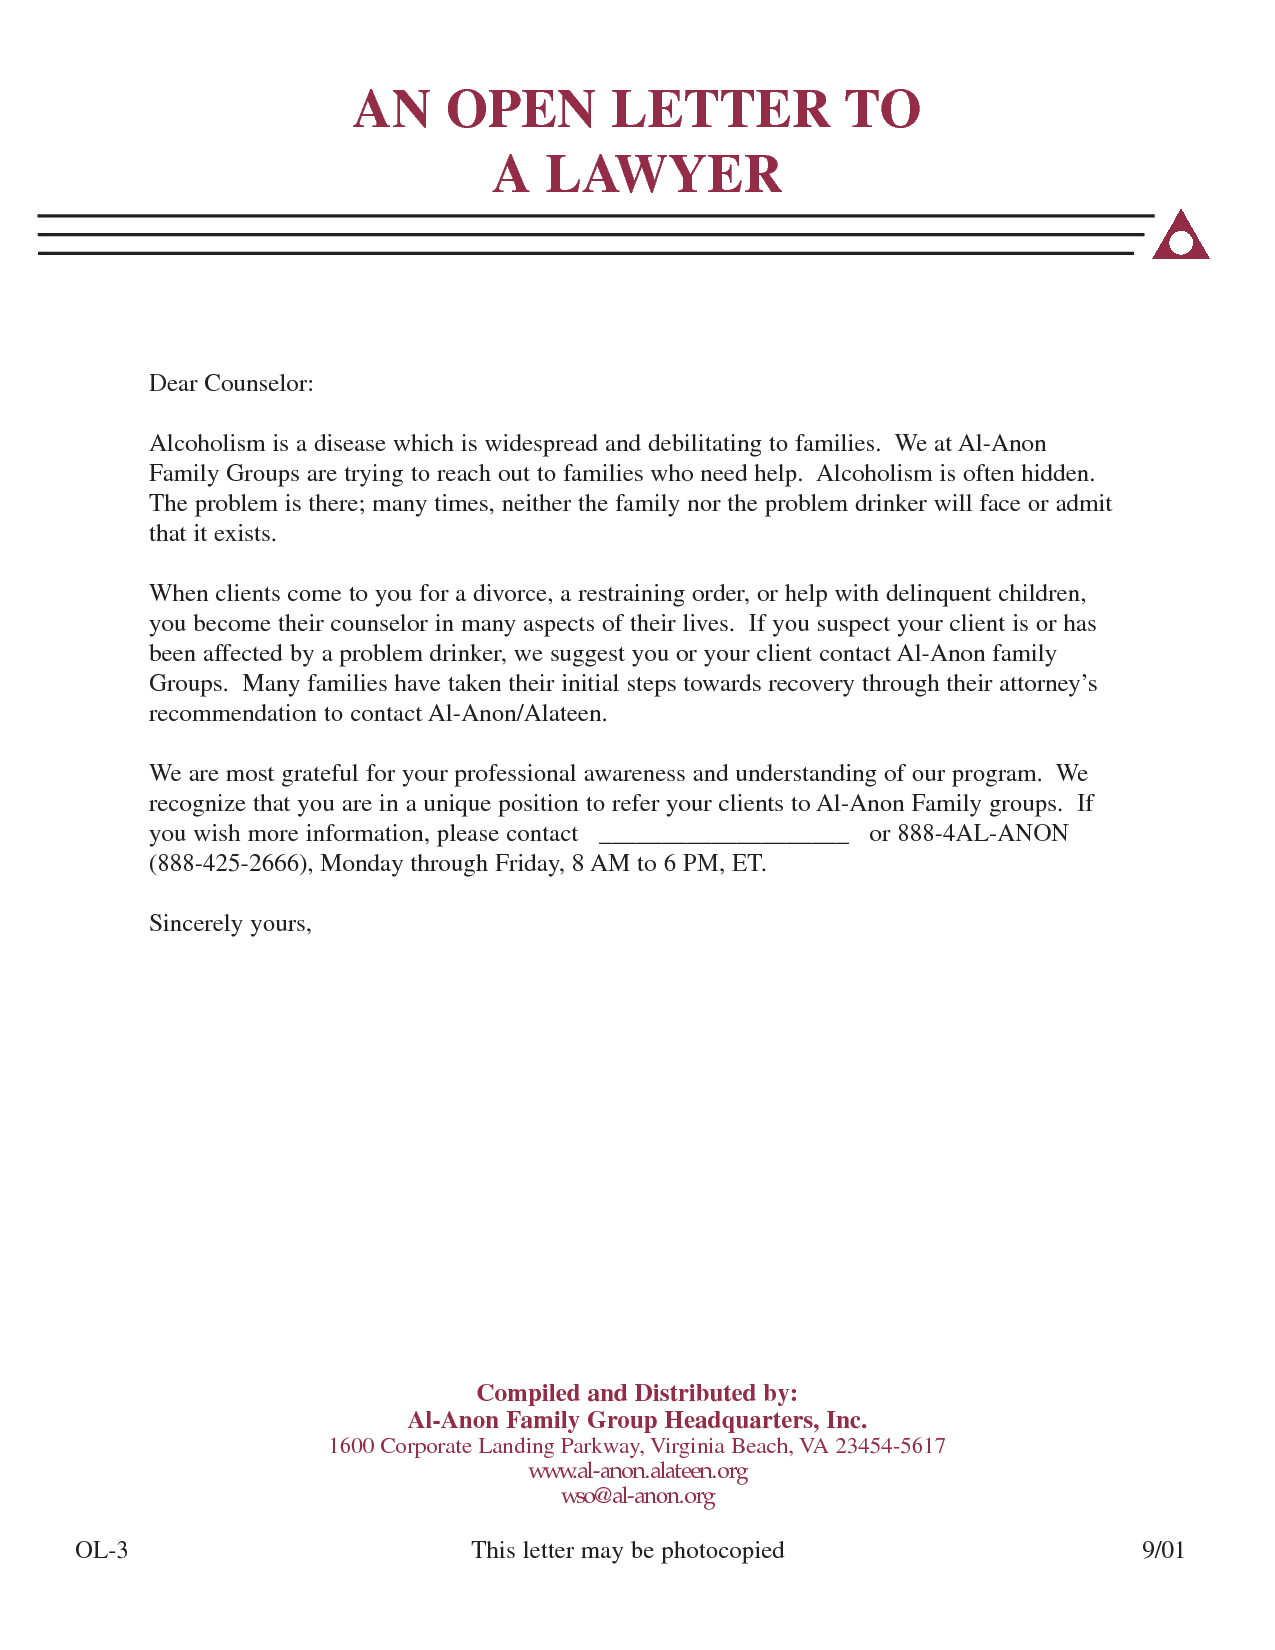 Attorney Termination Letter Template - How to Write A Letter Engagement Gallery Letter format formal